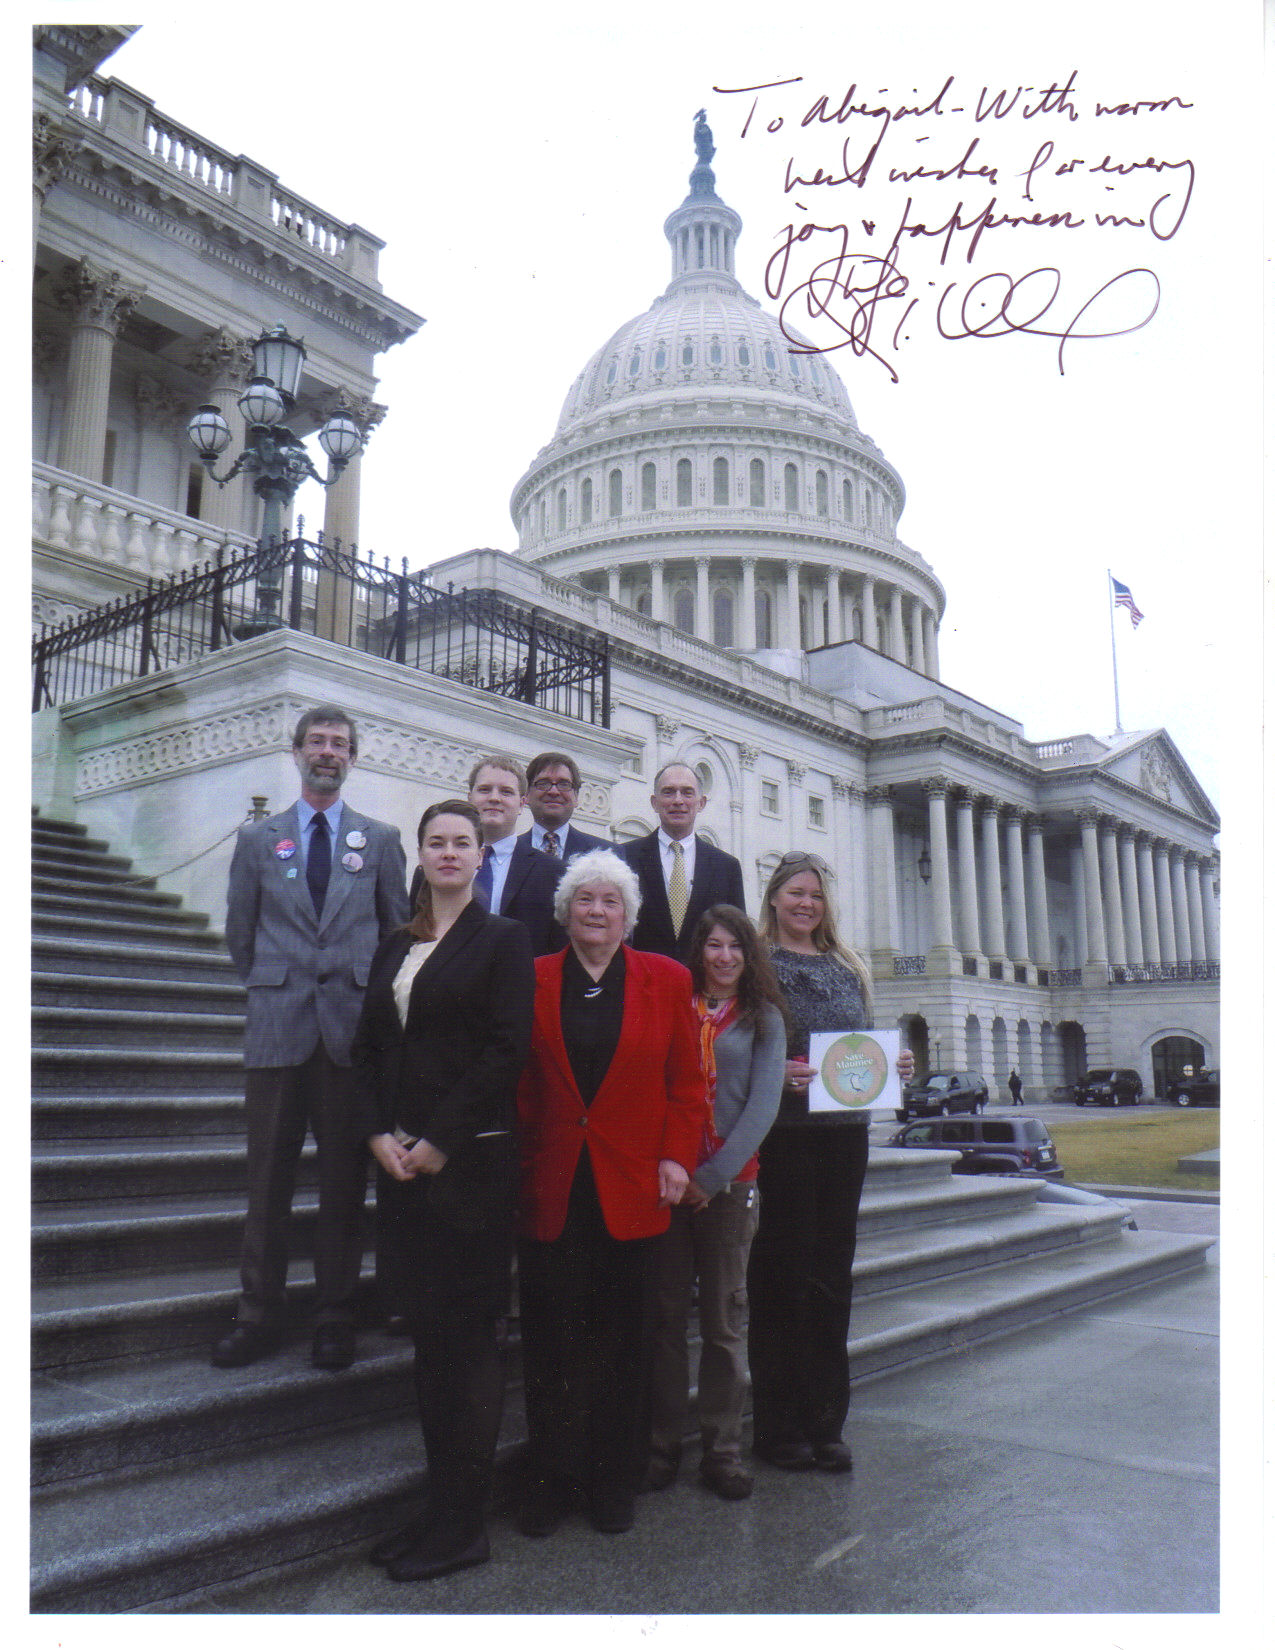 Peter Visclosky & Clean Water Advocates in front of the Capitol Building!